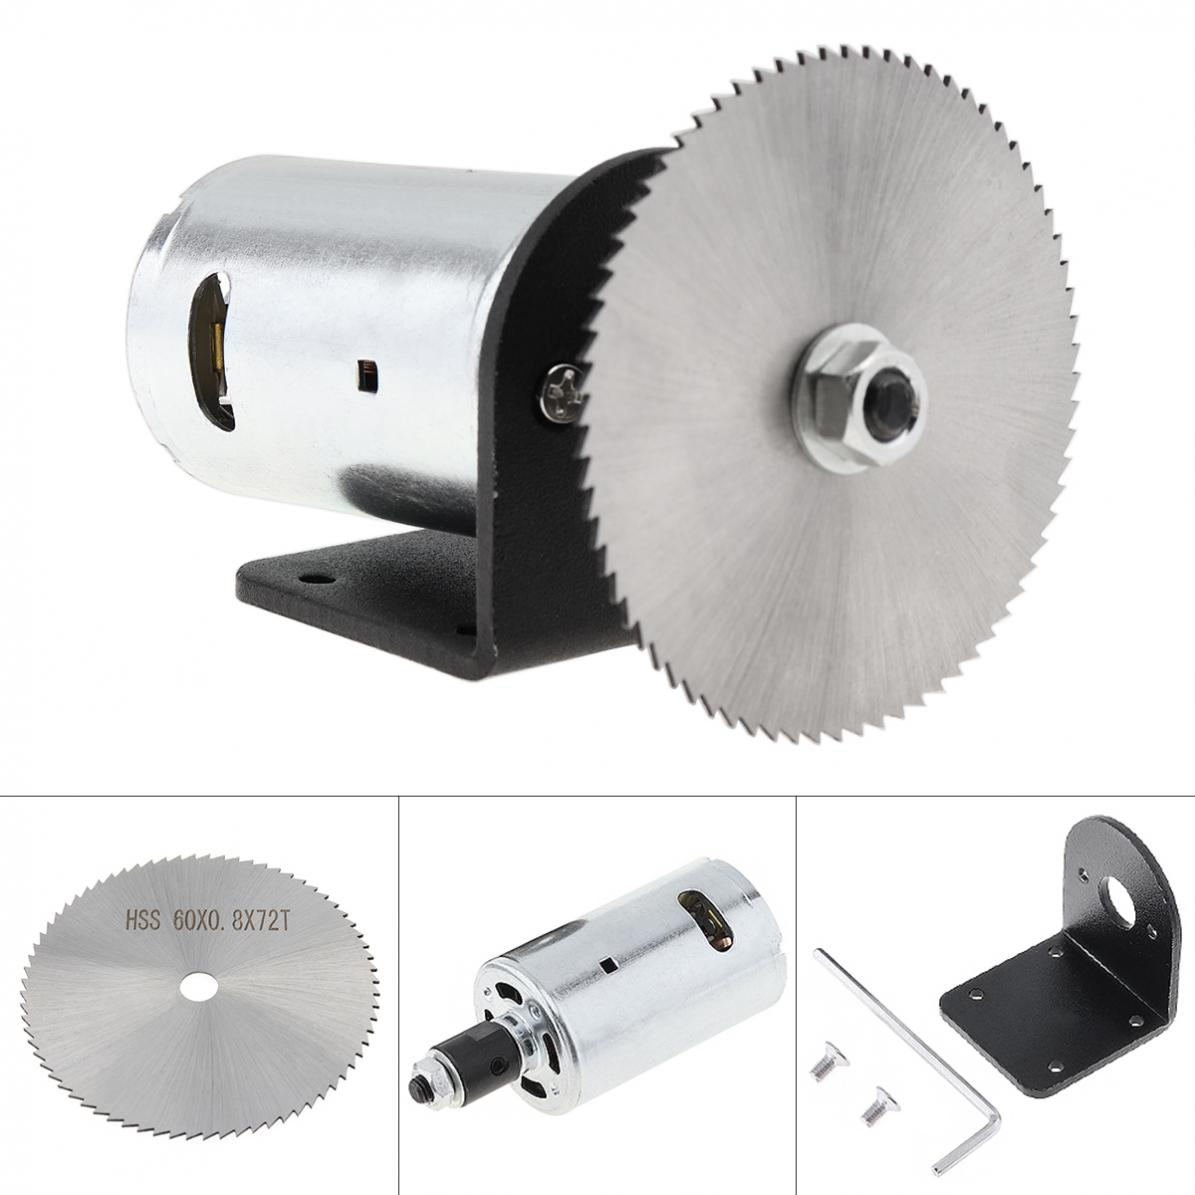 24V 555 Motor Table Circular Saw Kit With Ball Bearing Mounting Bracket And 60mm Saw Blade For Cutting Polishing Engraving